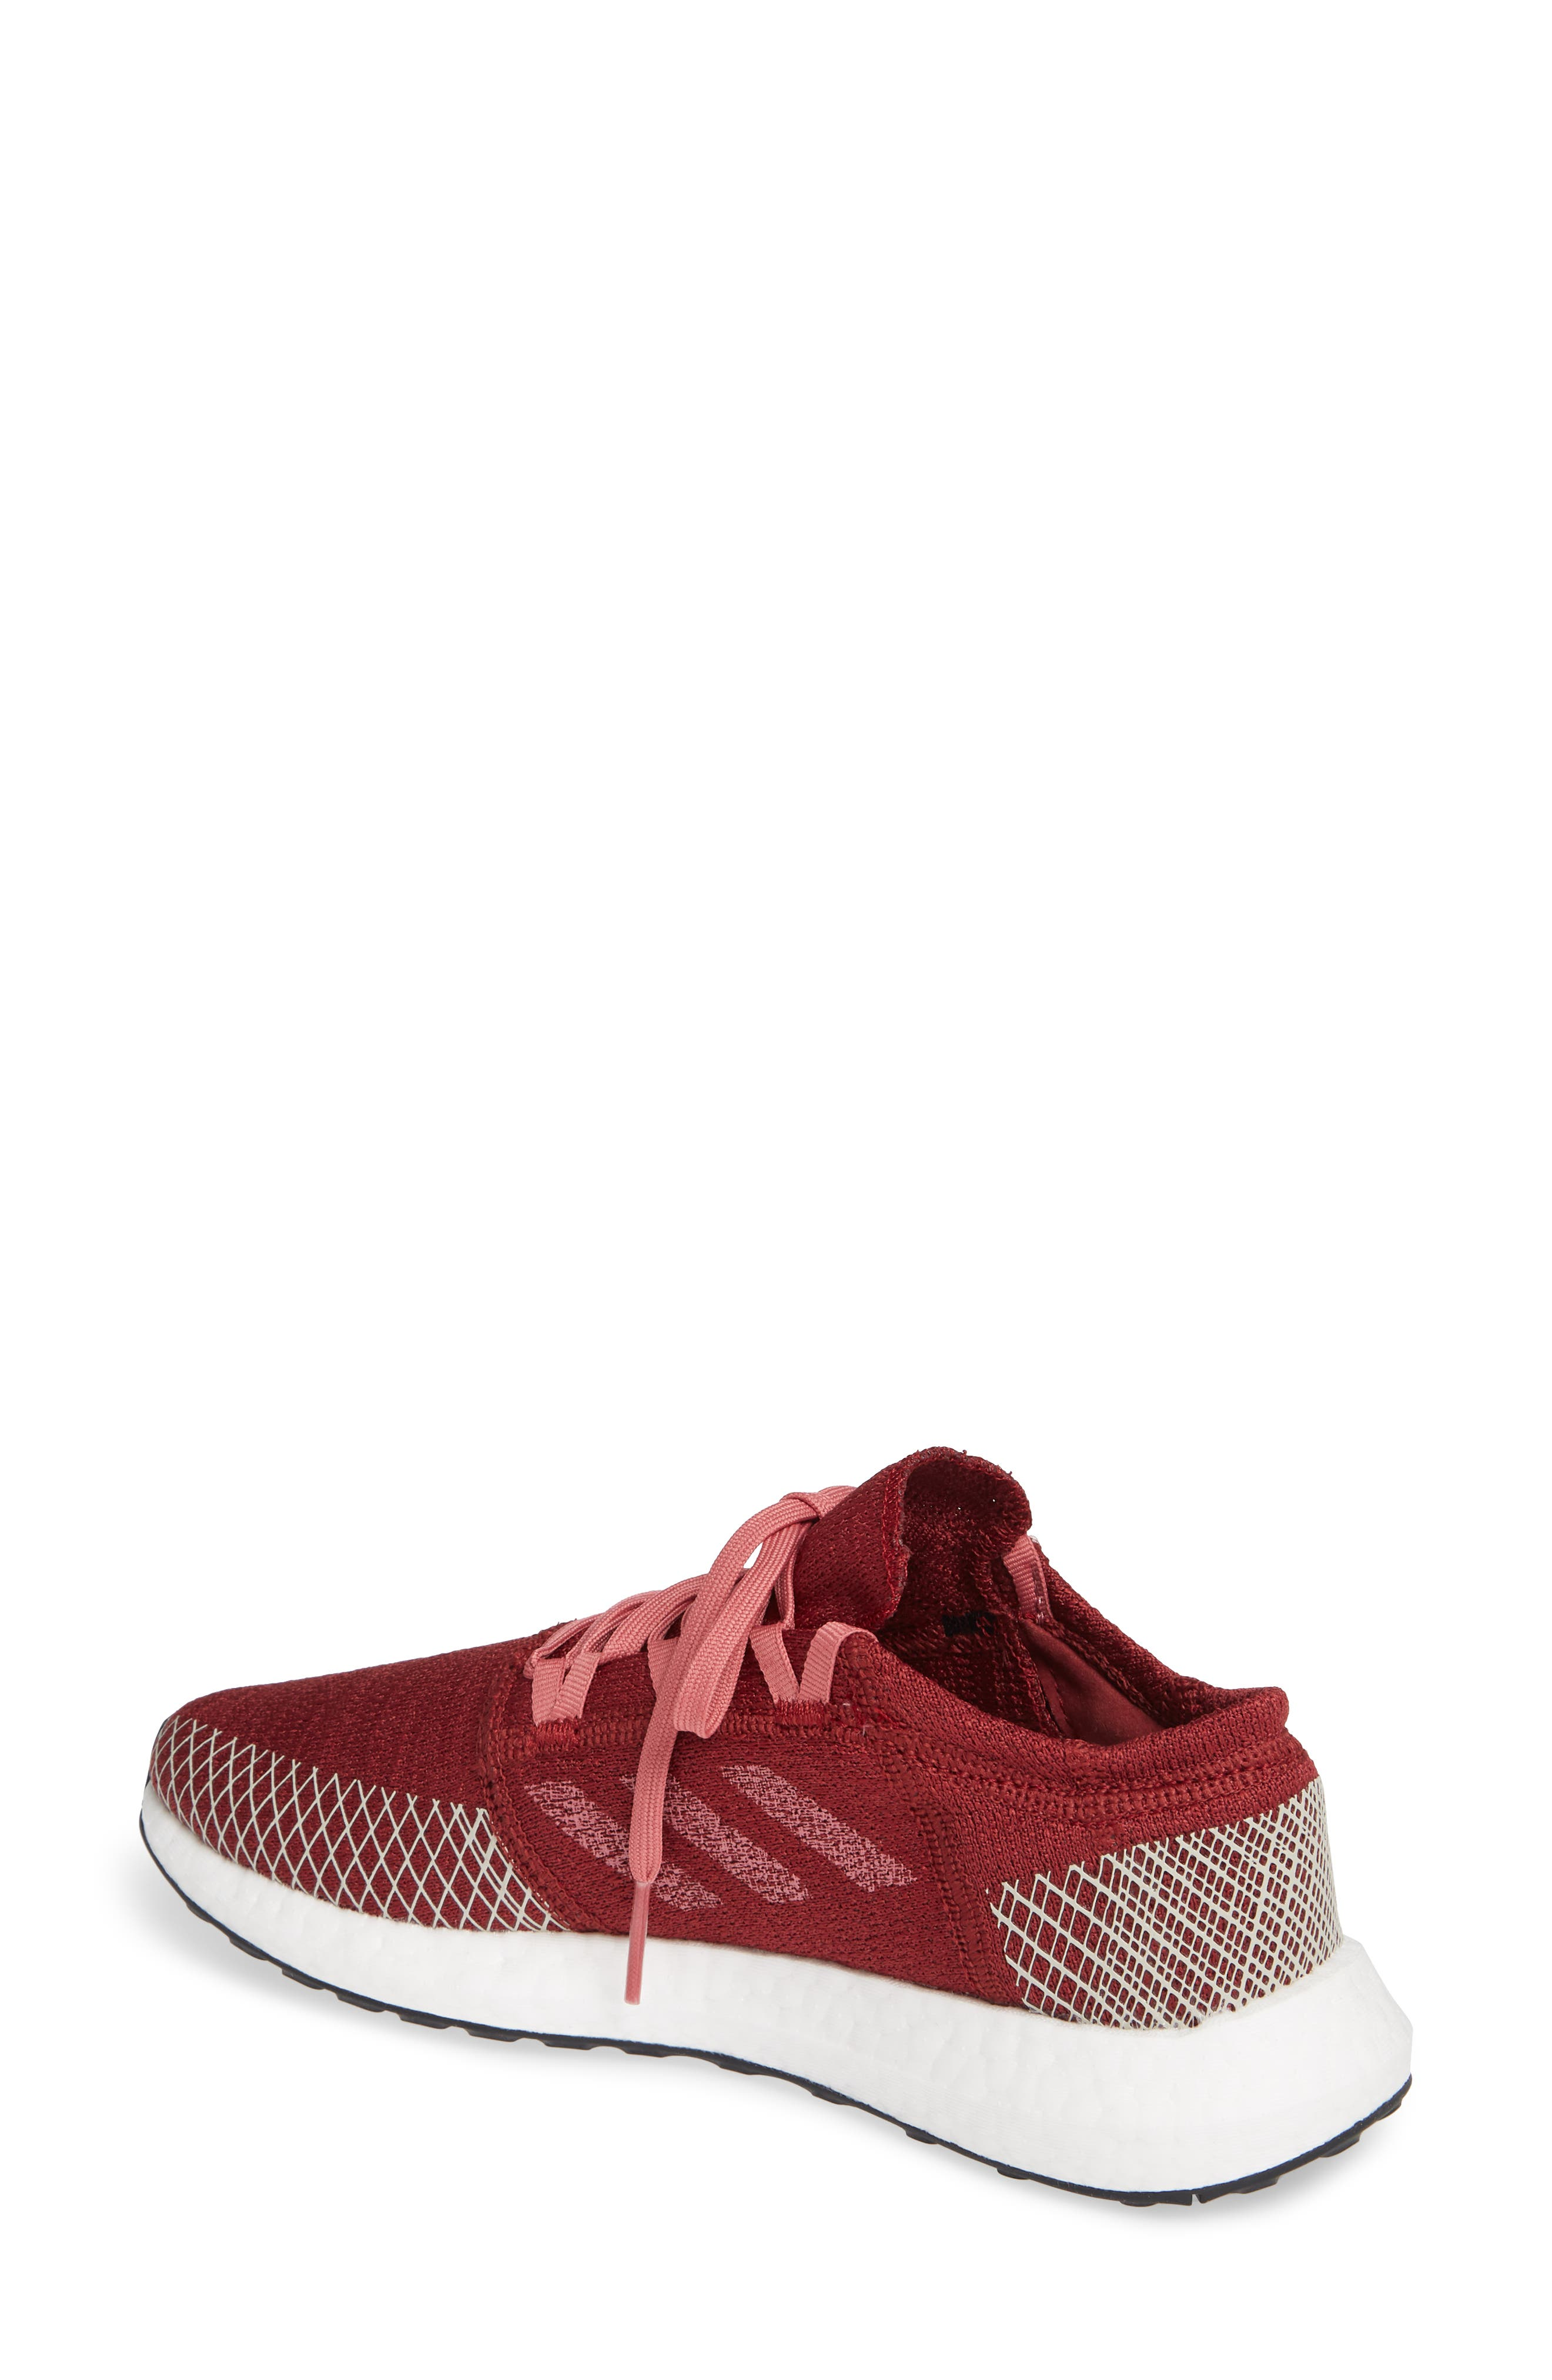 PureBoost X Element Knit Running Shoe,                             Alternate thumbnail 2, color,                             NOBLE MAROON/ MAROON/ BROWN